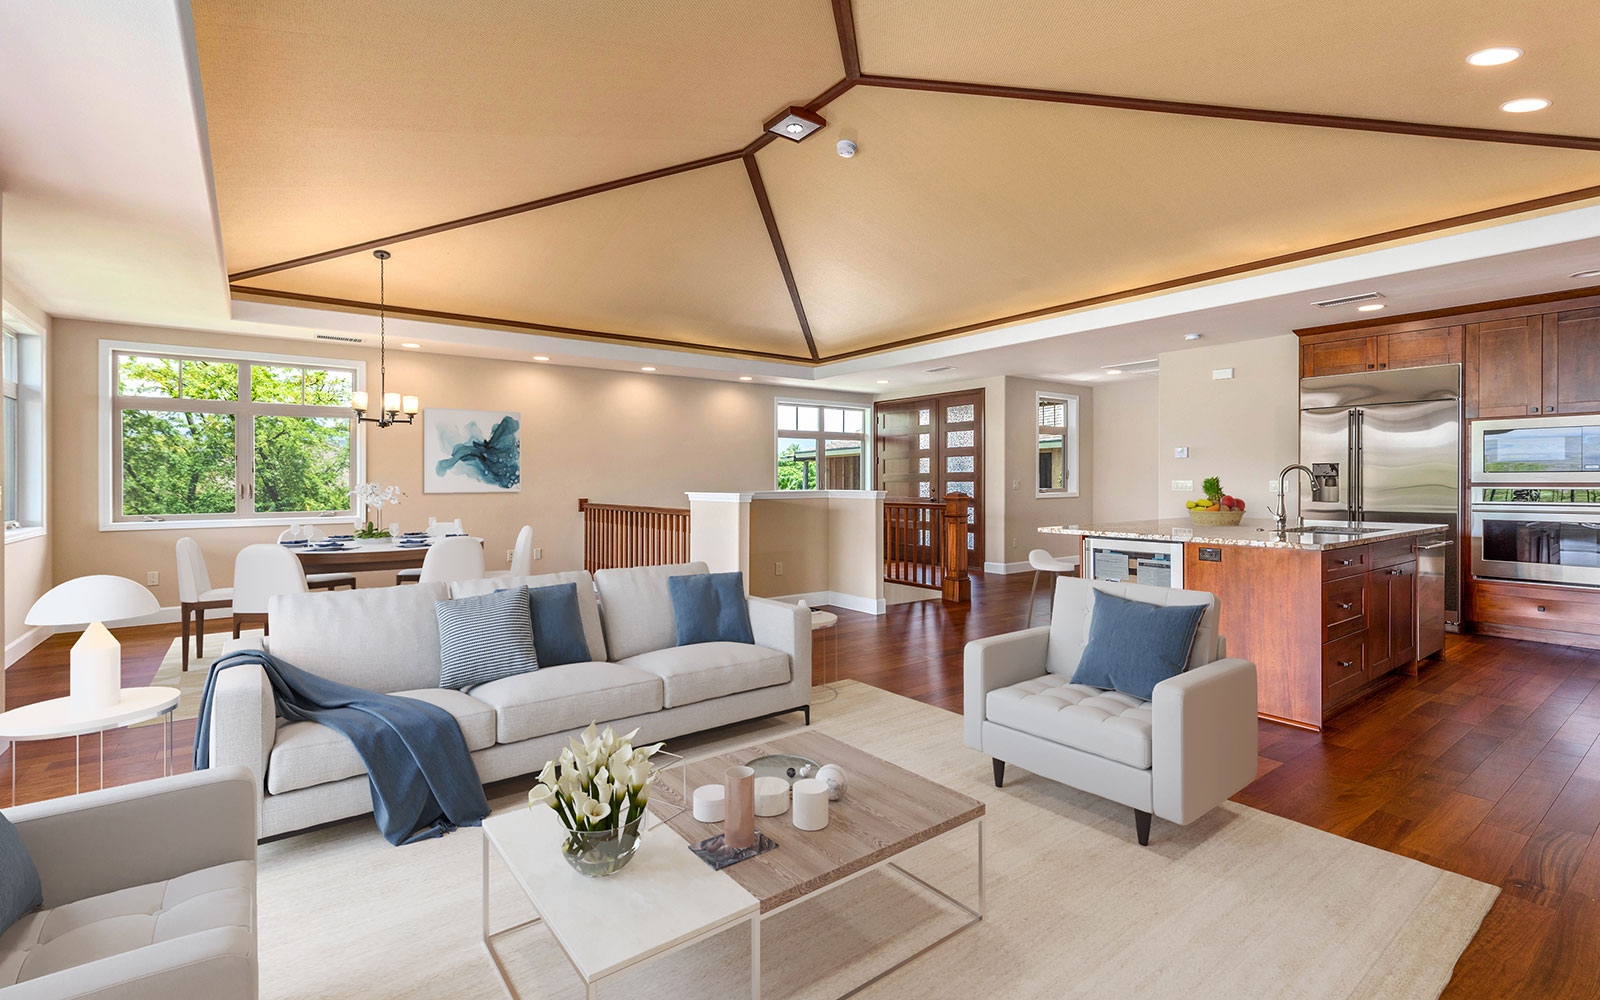 1great-room-mahina-plan-4-kamilo-at-mauna-lani-big-island-brookfield-residential